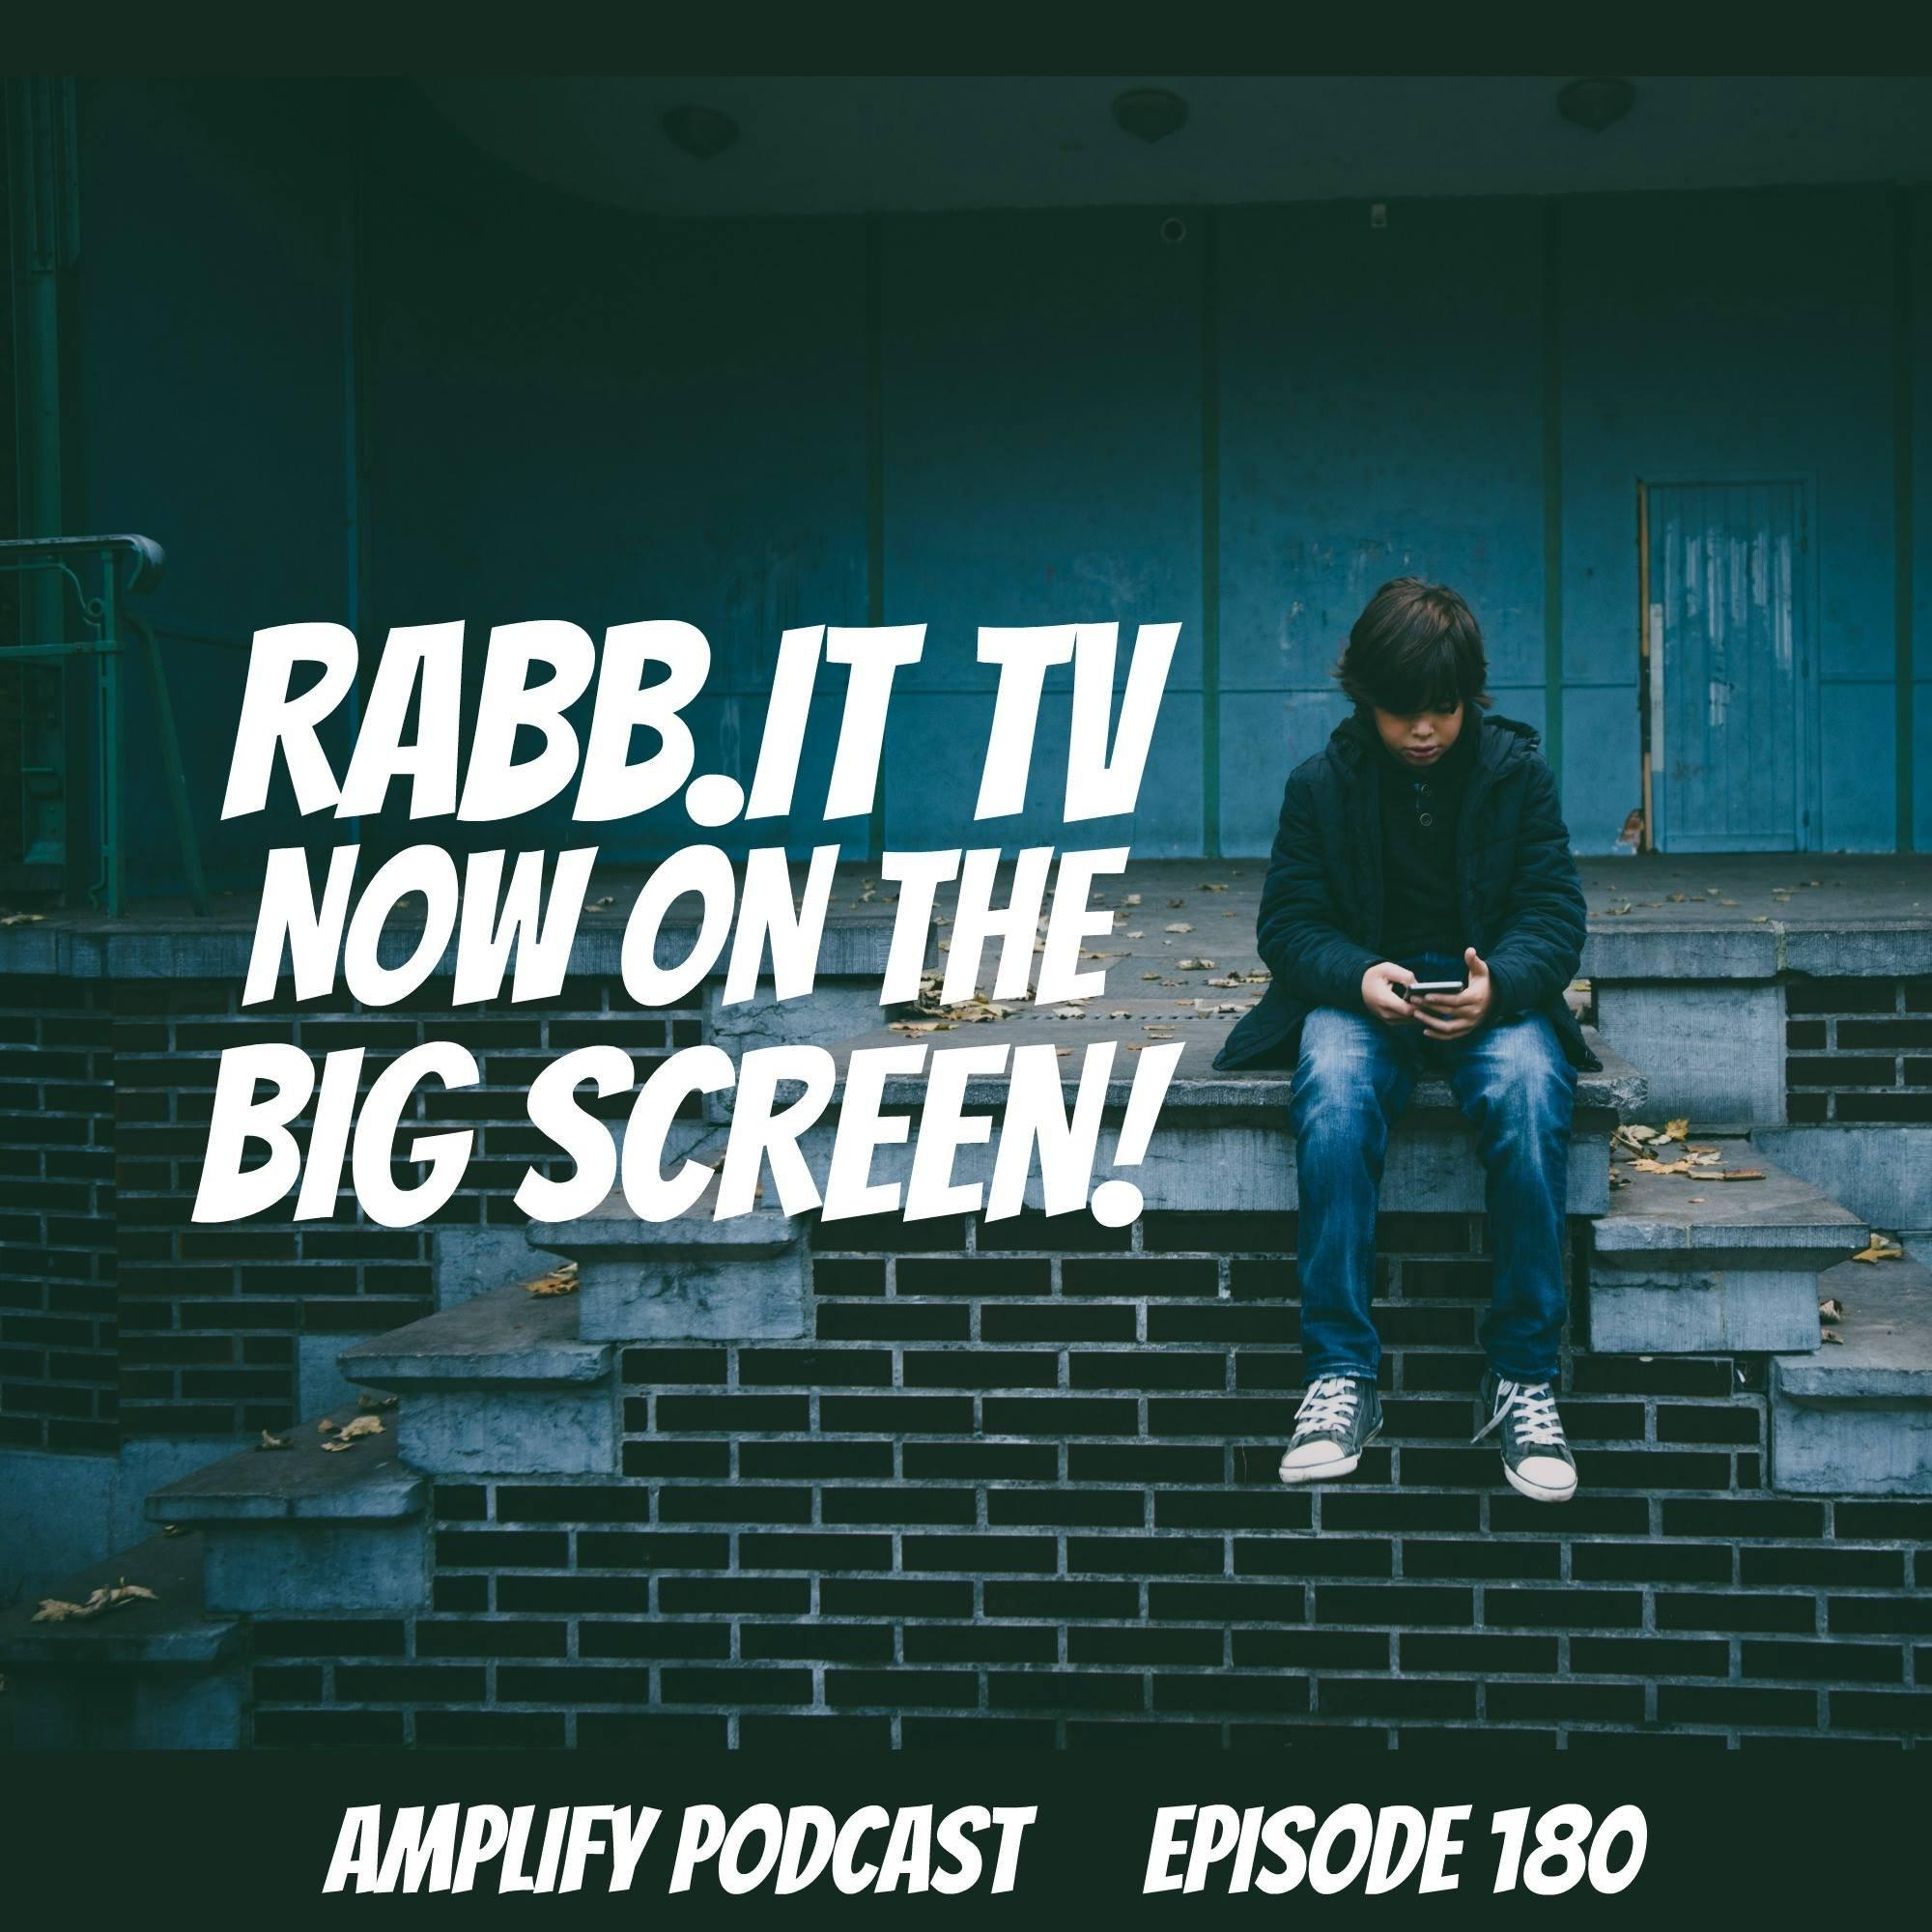 Rabb.it TV Now on the Big Screen